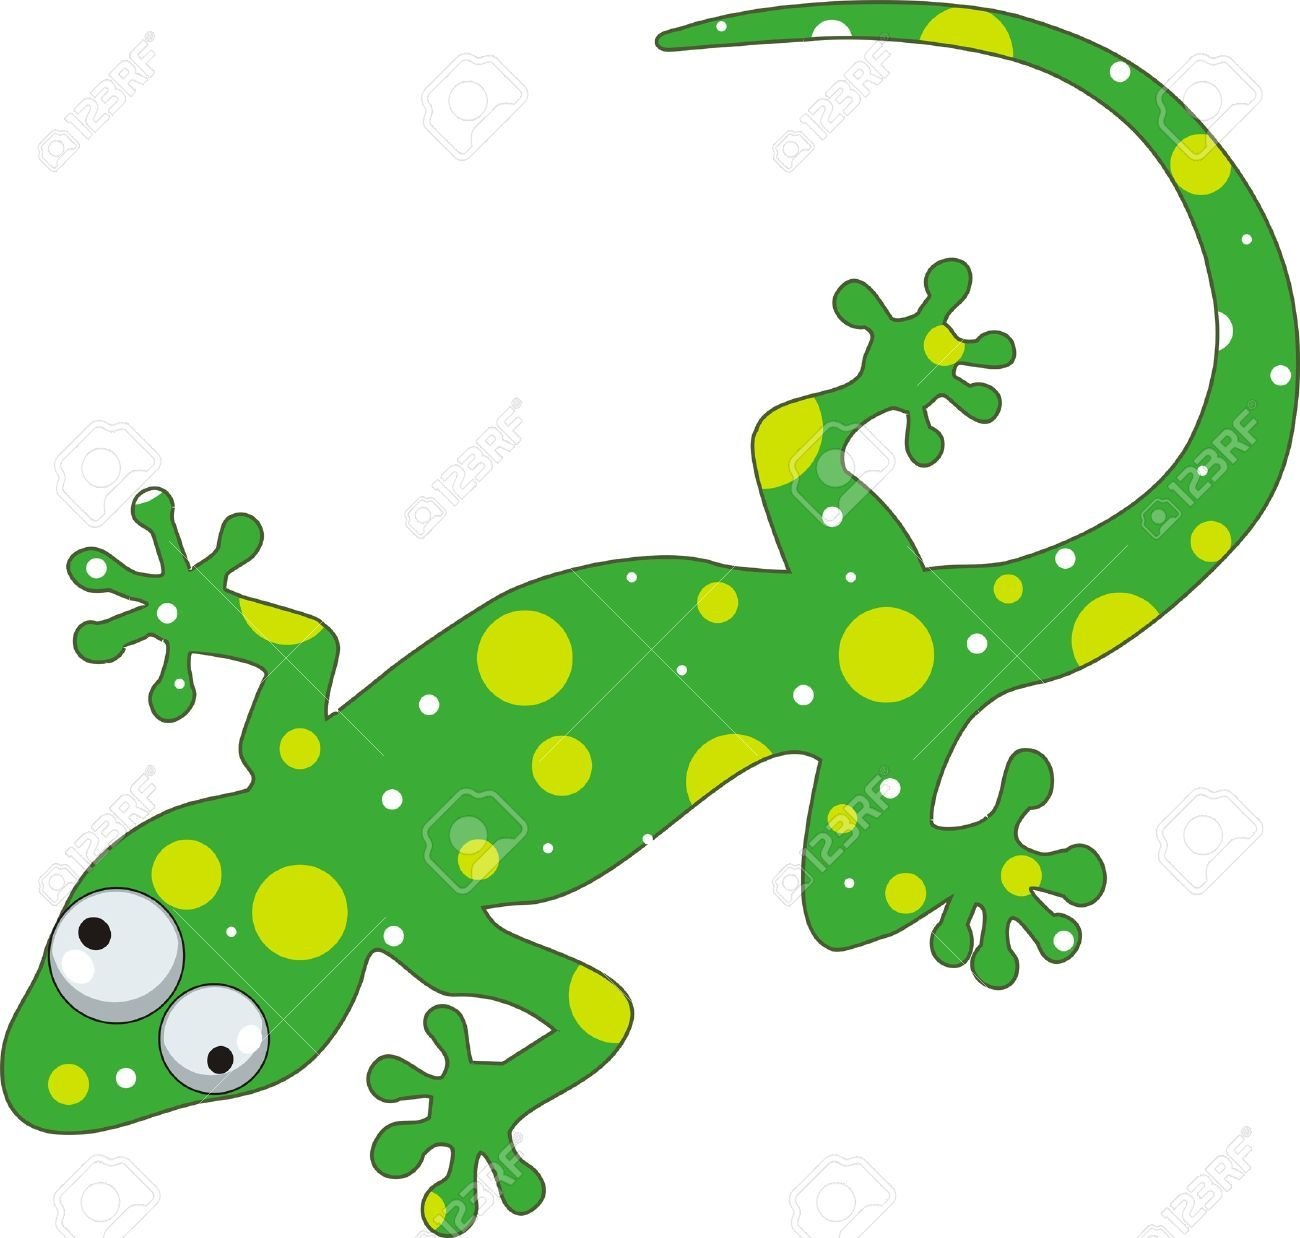 chameleon lizard cliparts stock vector and royalty free chameleon rh pinterest com lizard clip art/free lizard clip art images